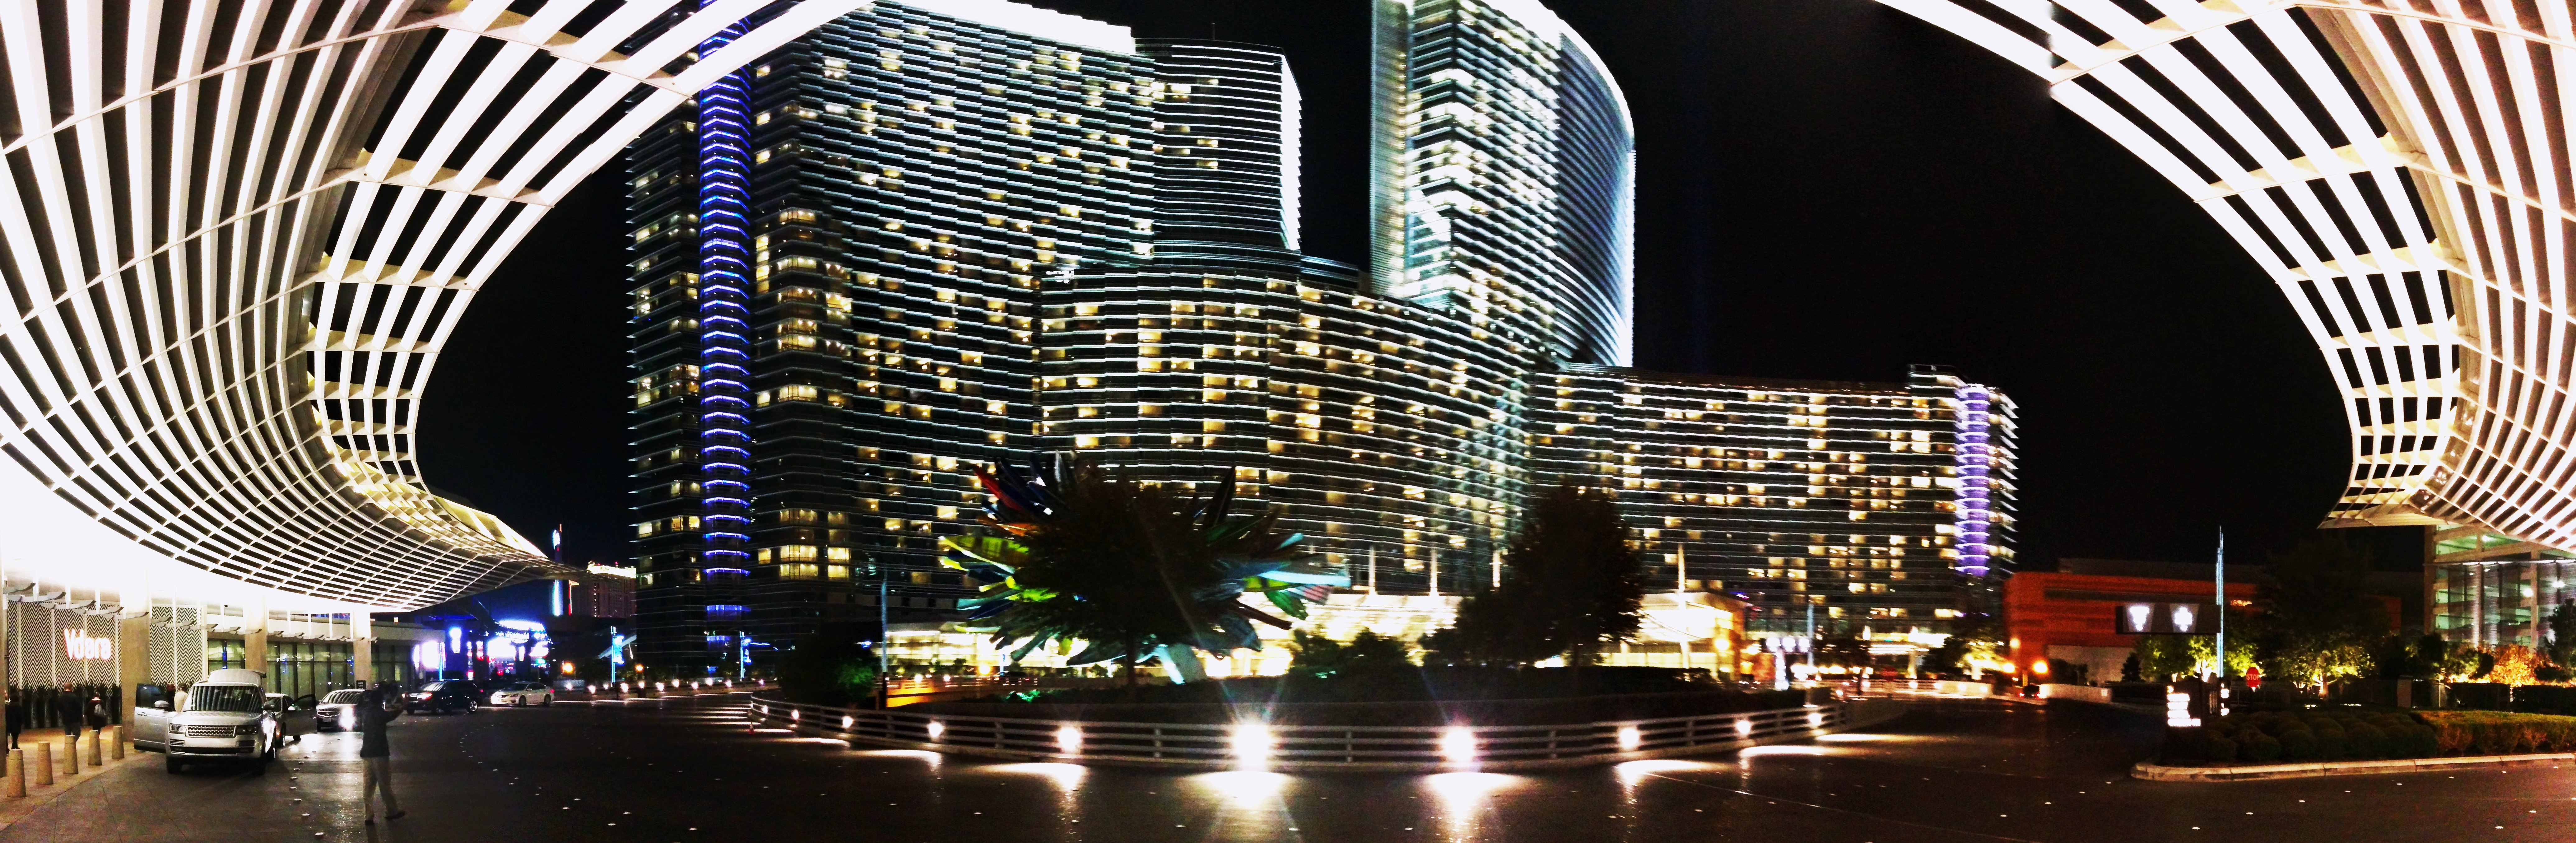 Vdara Hotel And Spa Las Vegas Strip